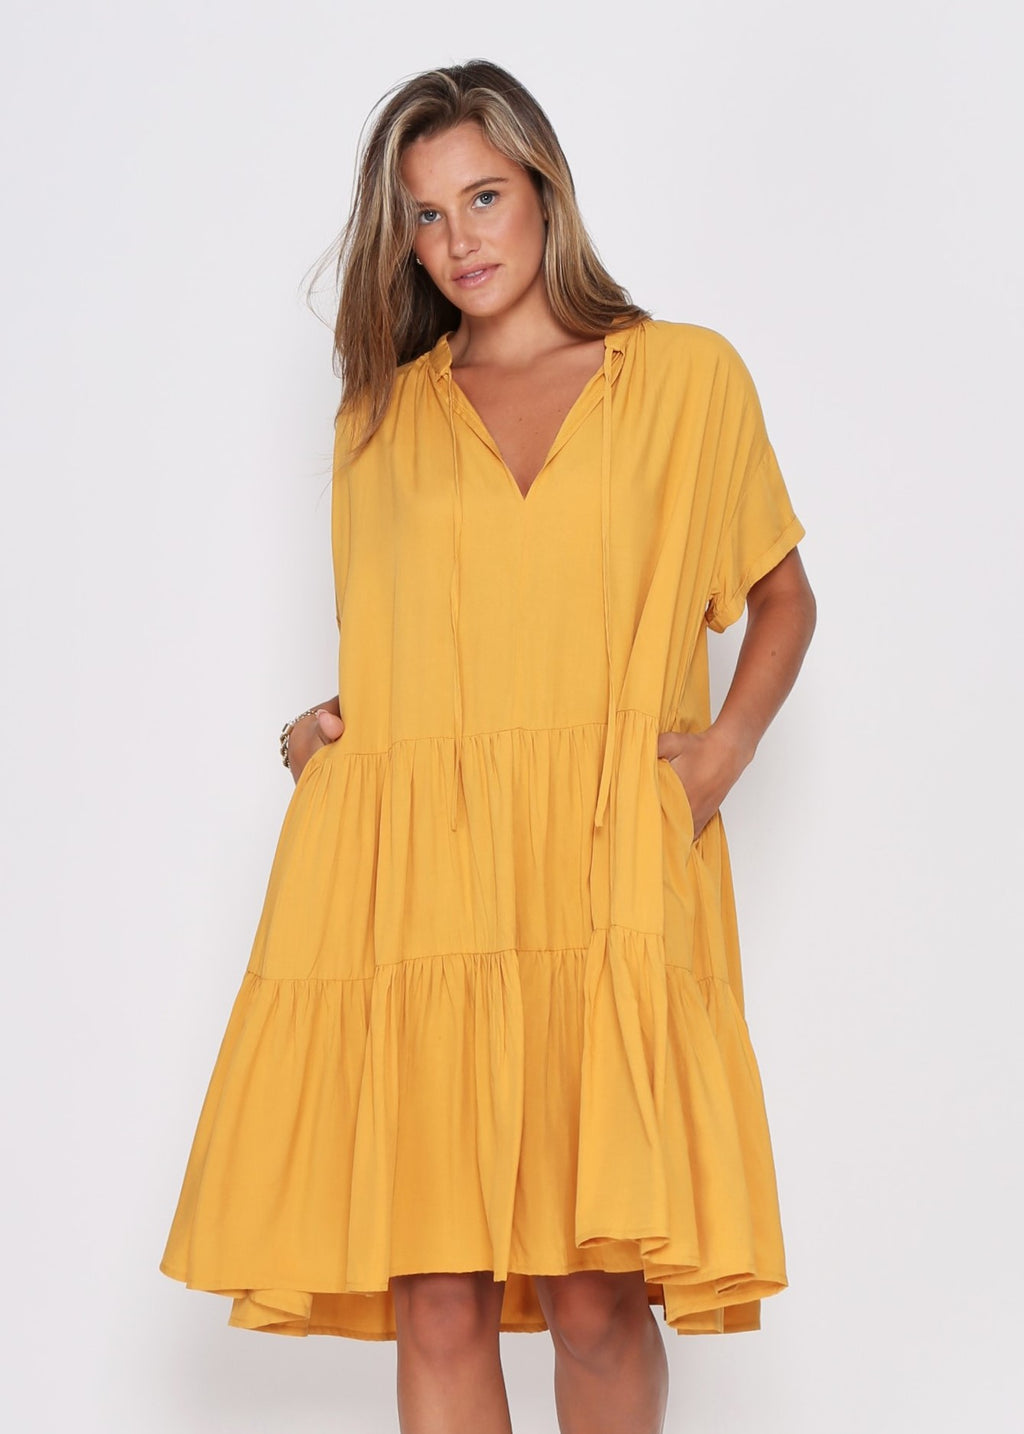 NEW - KARA DRESS - MUSTARD